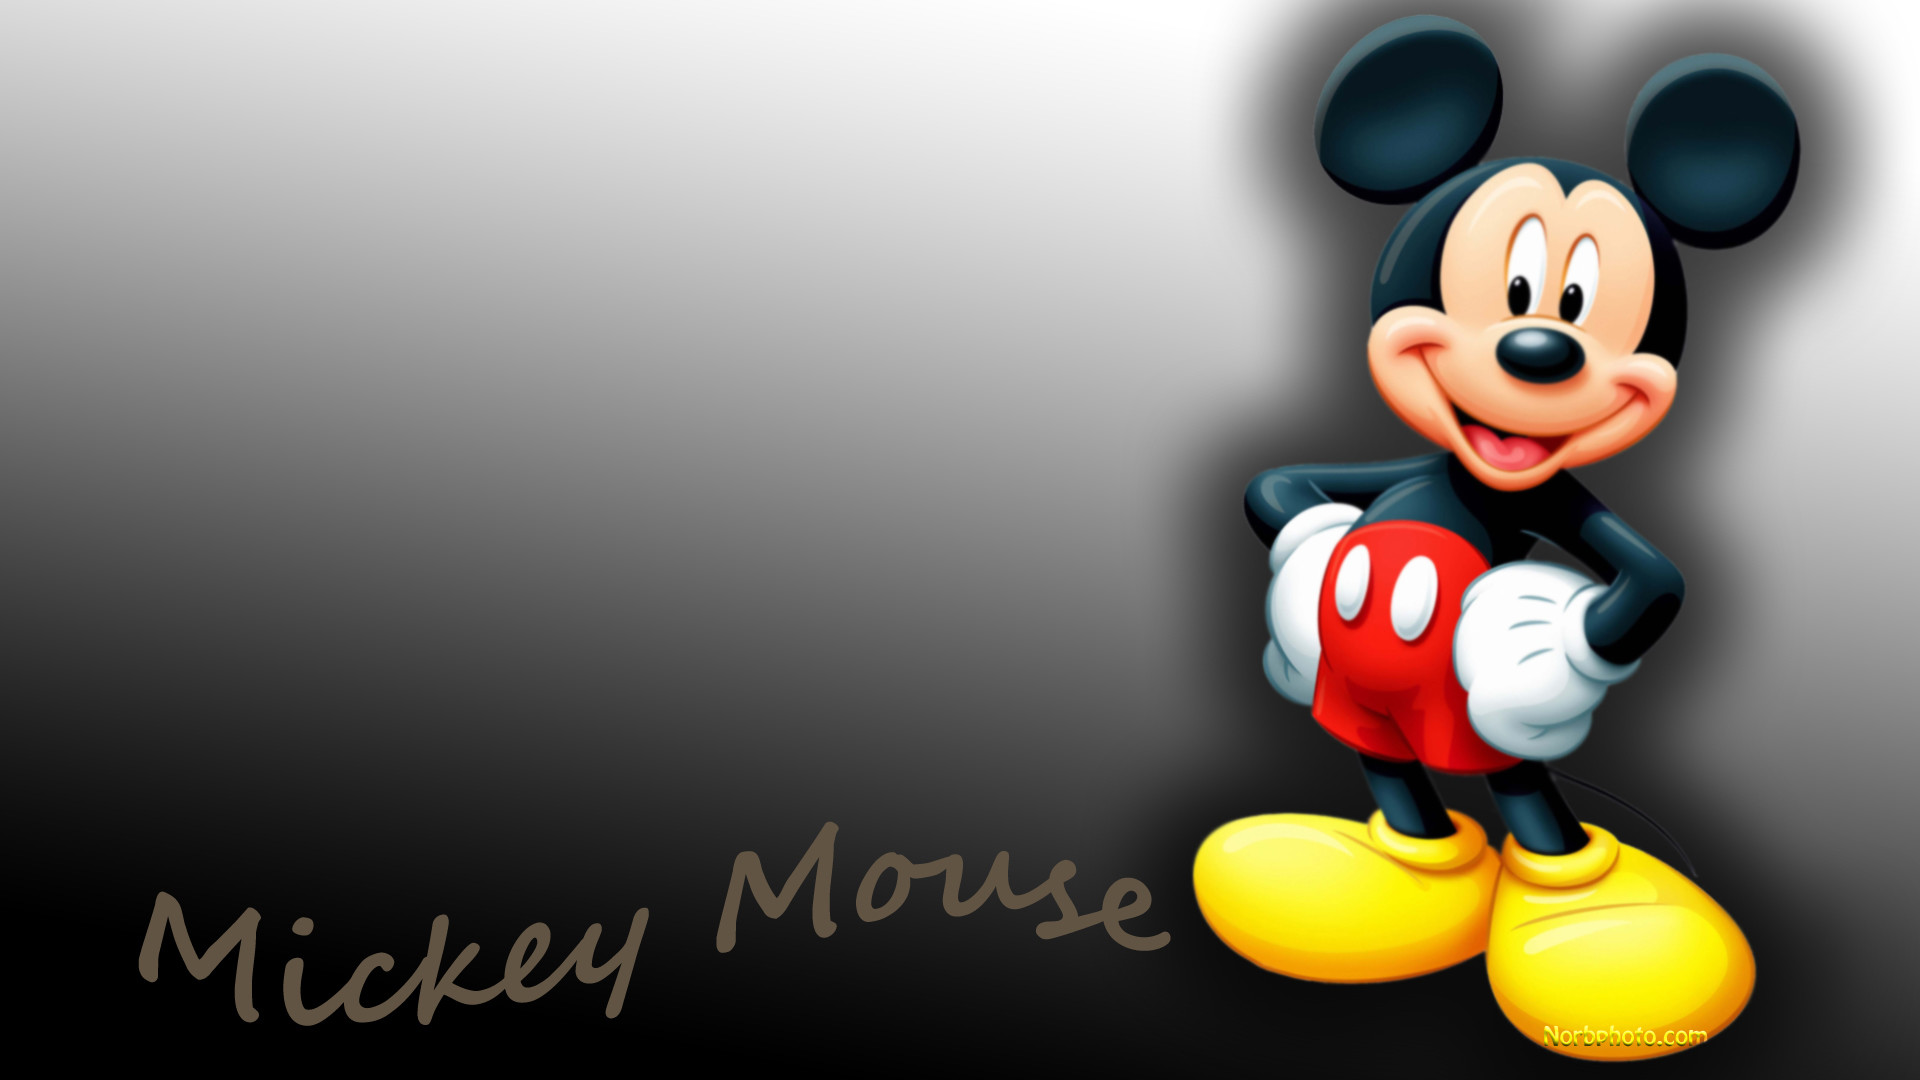 1920x1080 Explore Mickey Mouse Wallpaper and more!